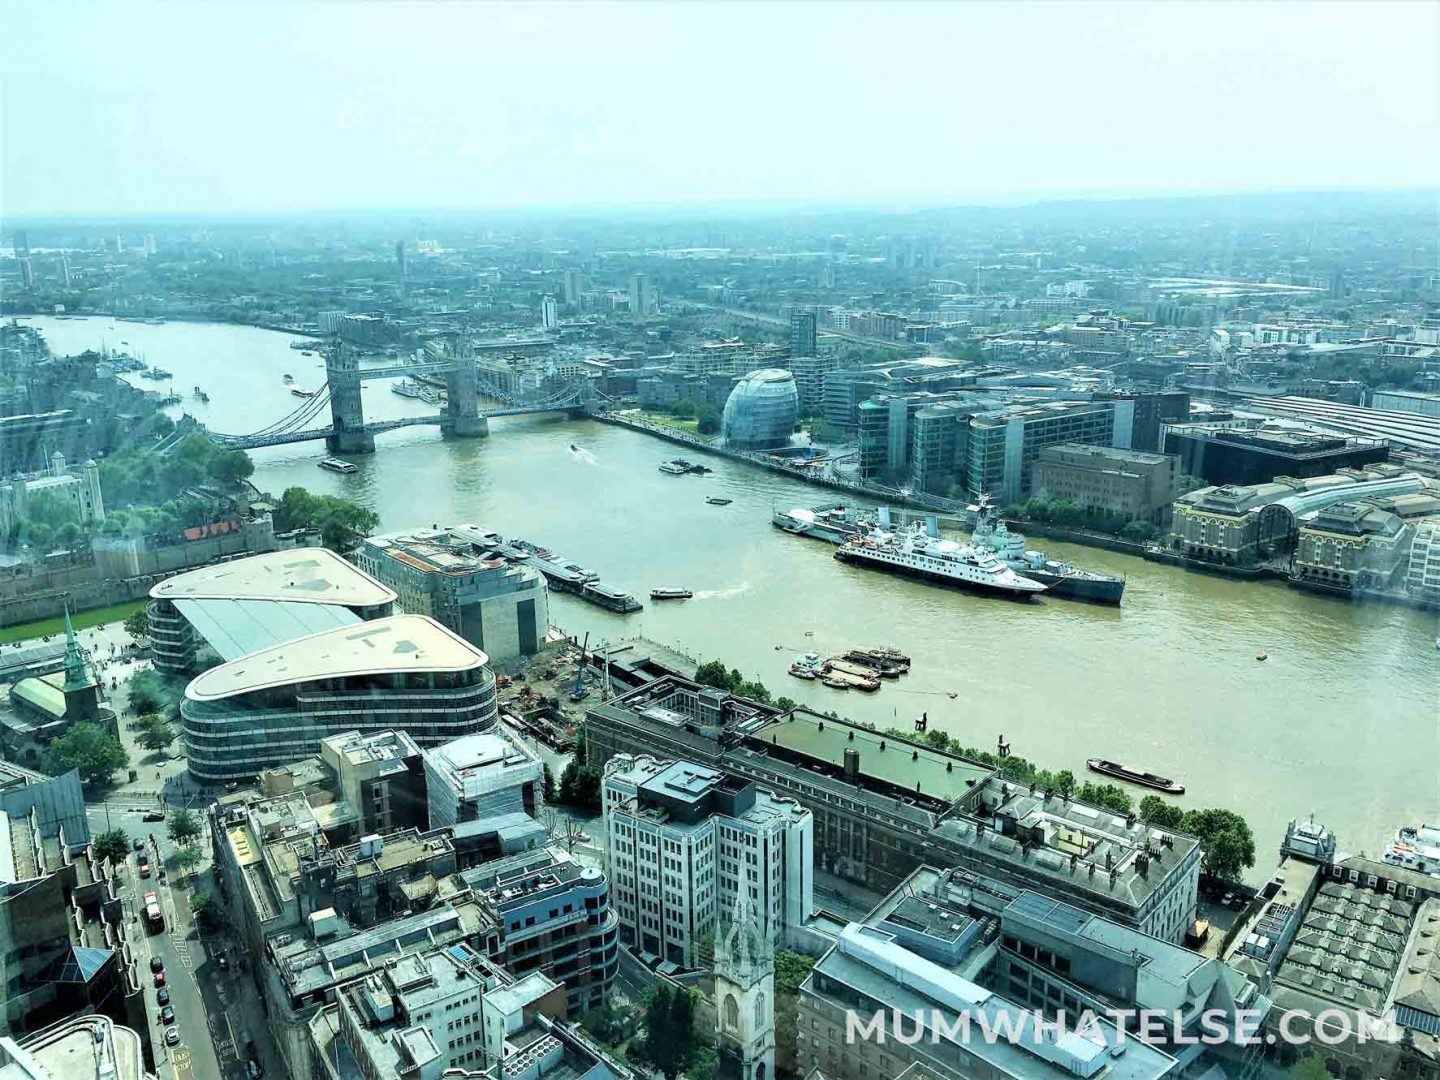 View of the Thames from The Sky Garden